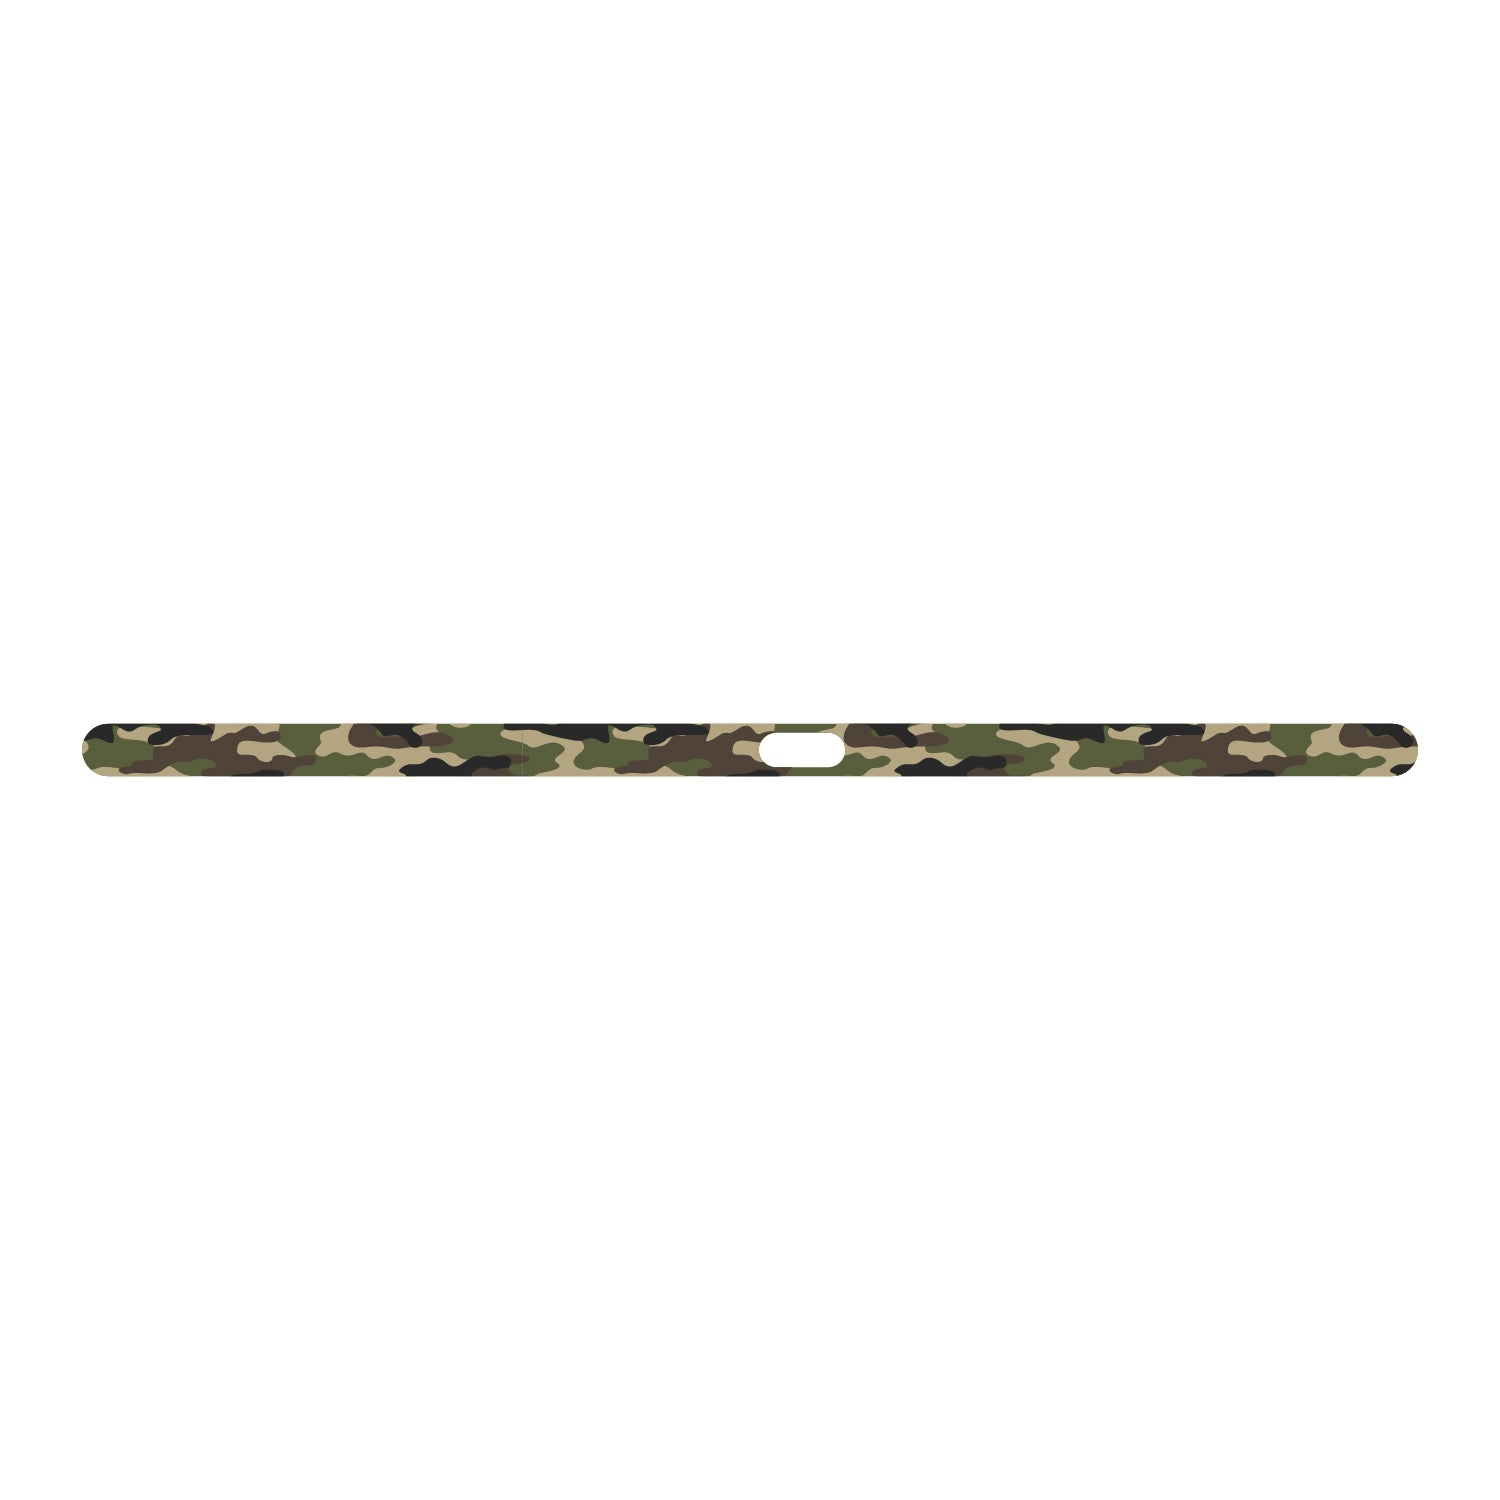 Eyebloc Webcam Cover for MacBook - Military Camo